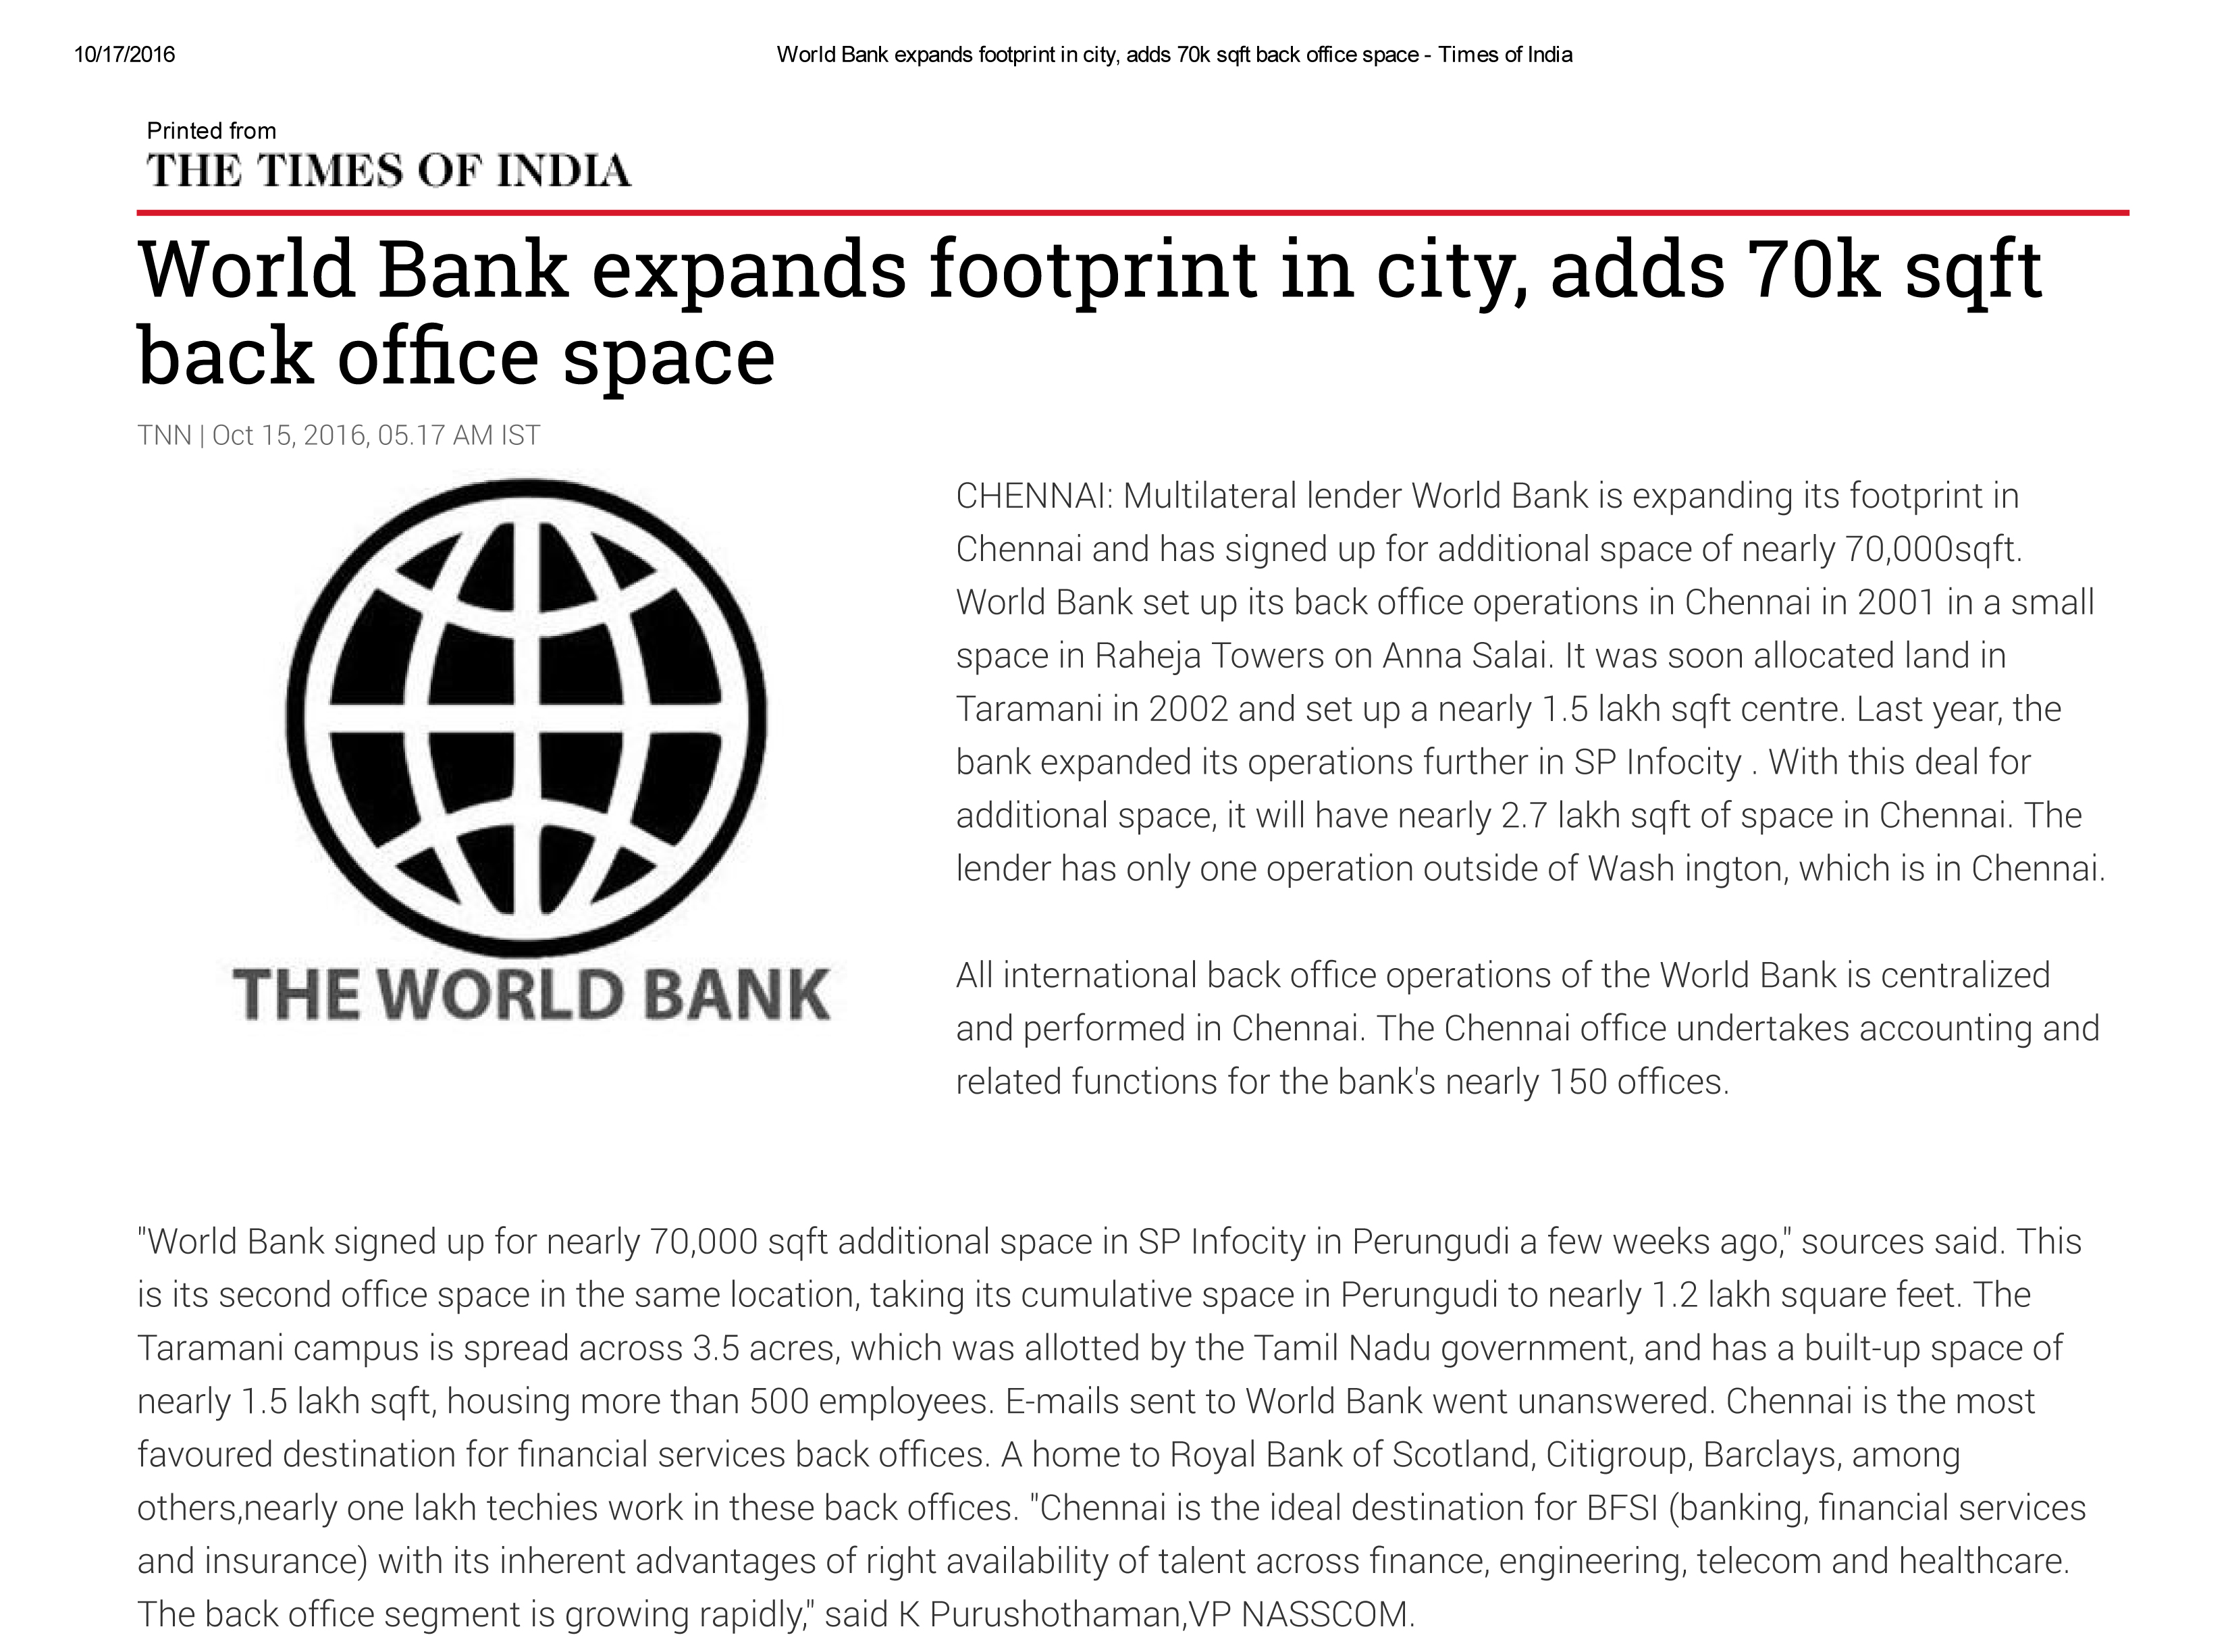 World Bank expands footprint in city, adds 70k sqft back office space